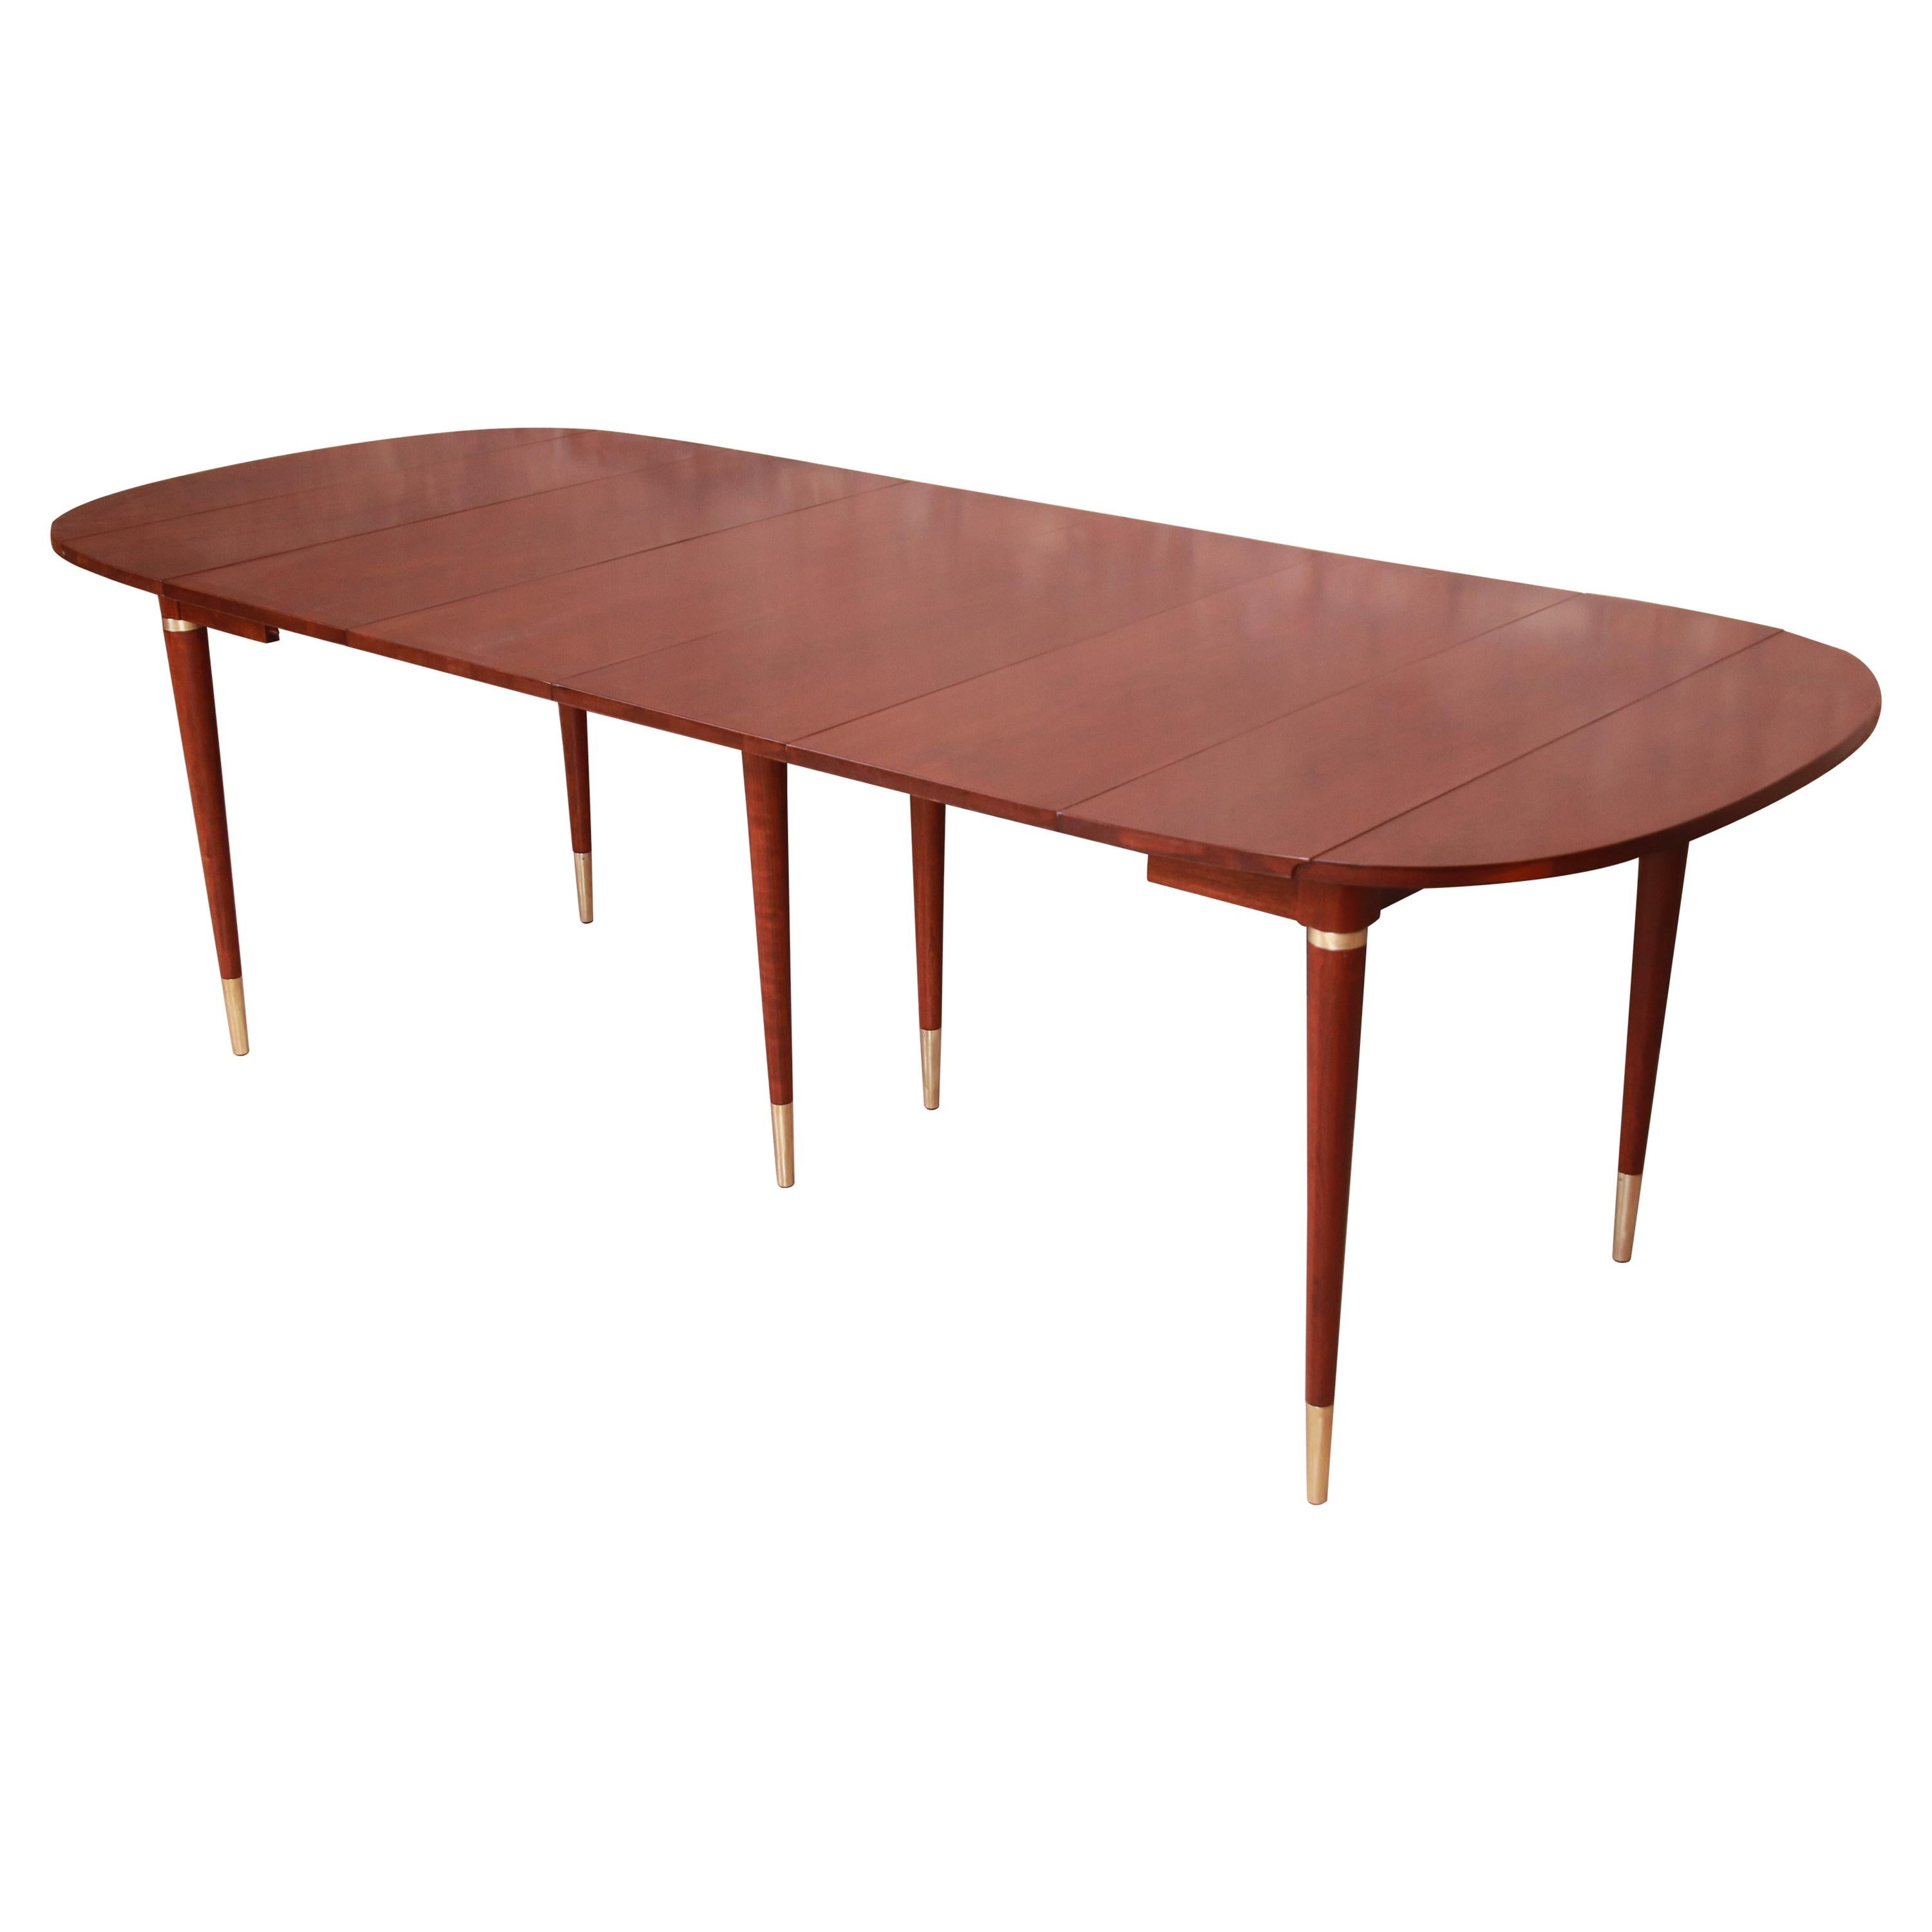 John Widdicomb Mid-Century Modern Cherry Wood Extension Dining Table, Refinished